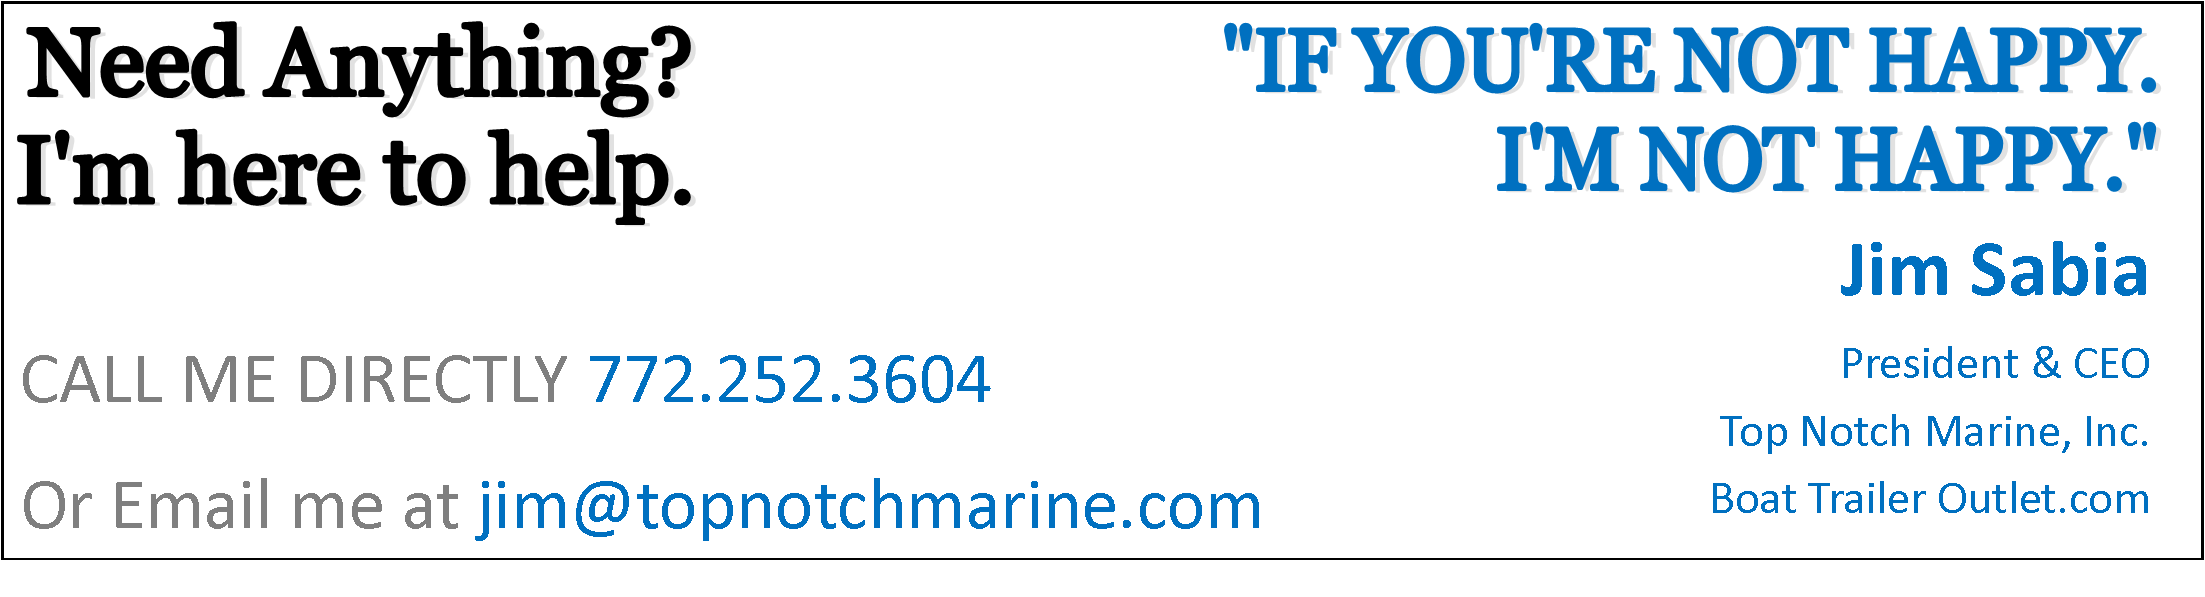 Get in Touch - Top Notch Marine